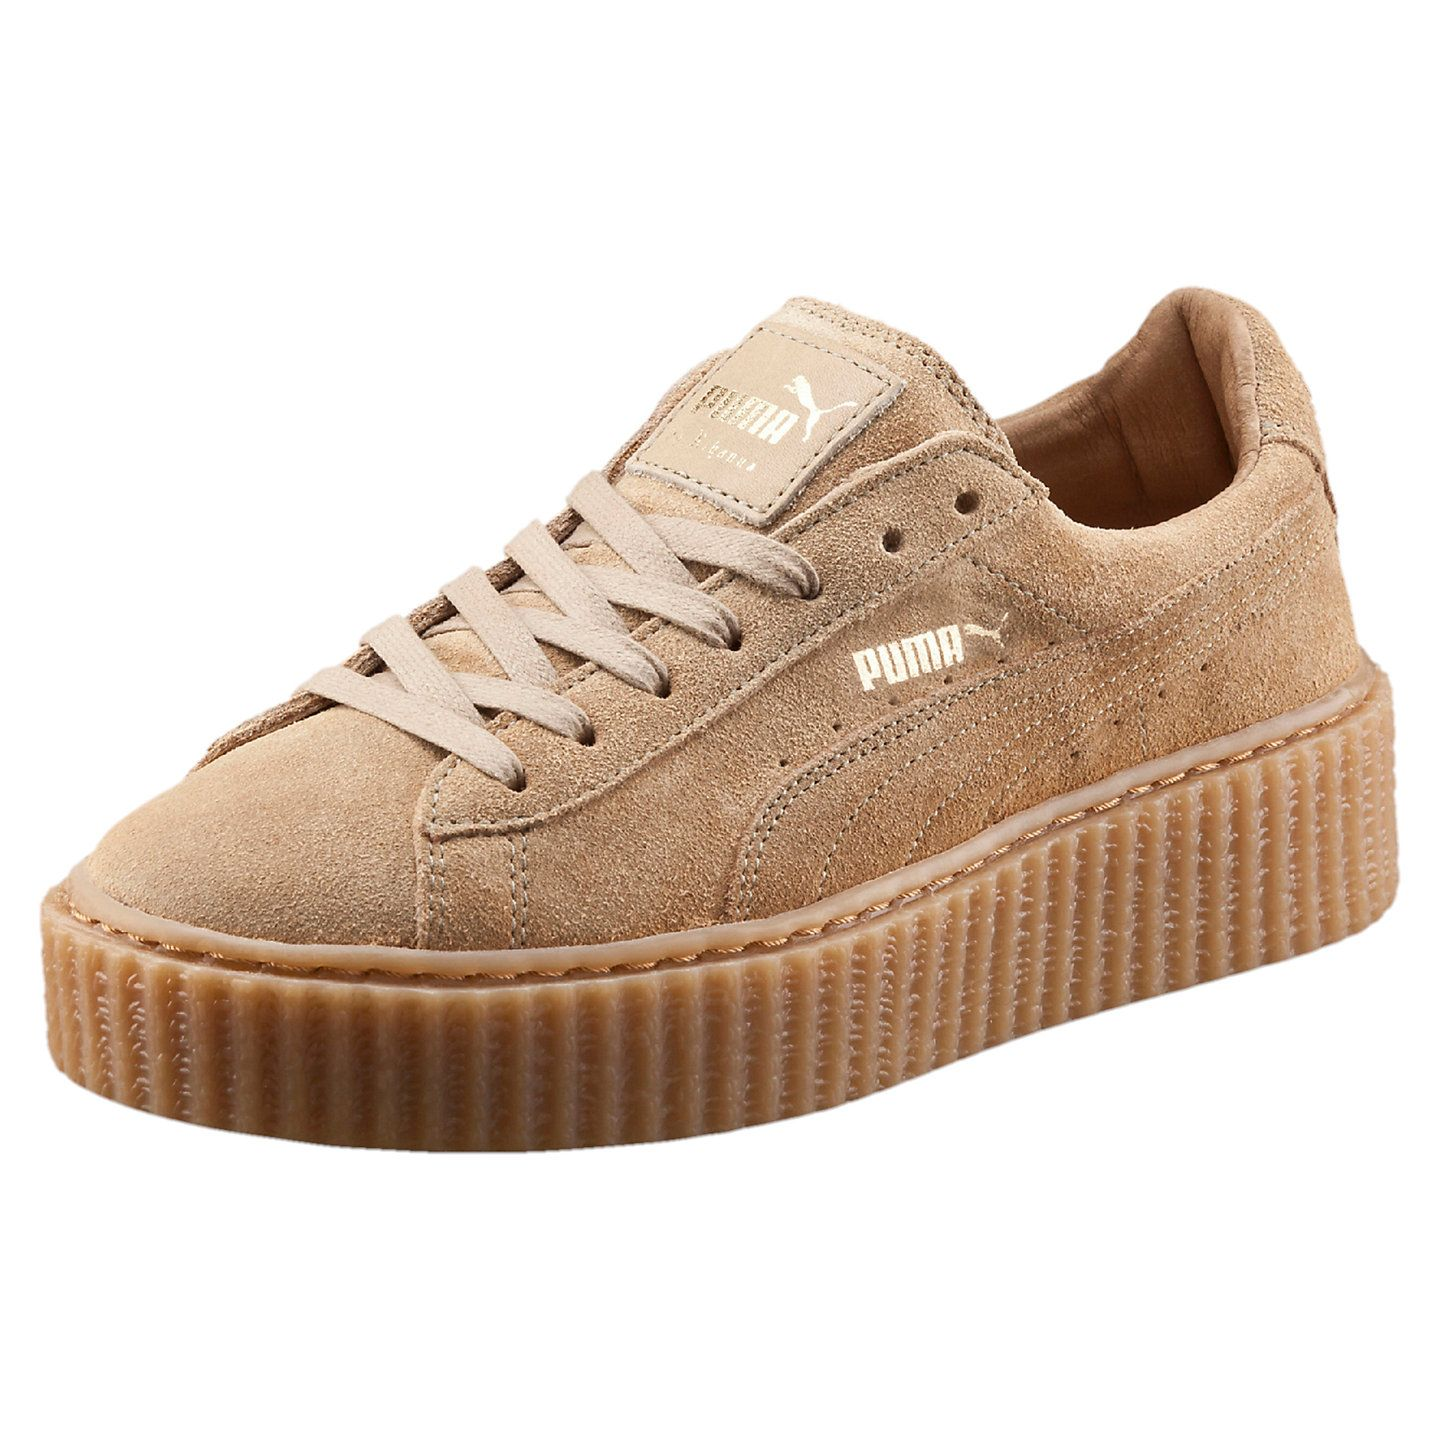 promo code 0b3d0 1f970 PUMA BY RIHANNA WOMEN'S OATMEAL CREEPERS - US | SHOES | Puma ...